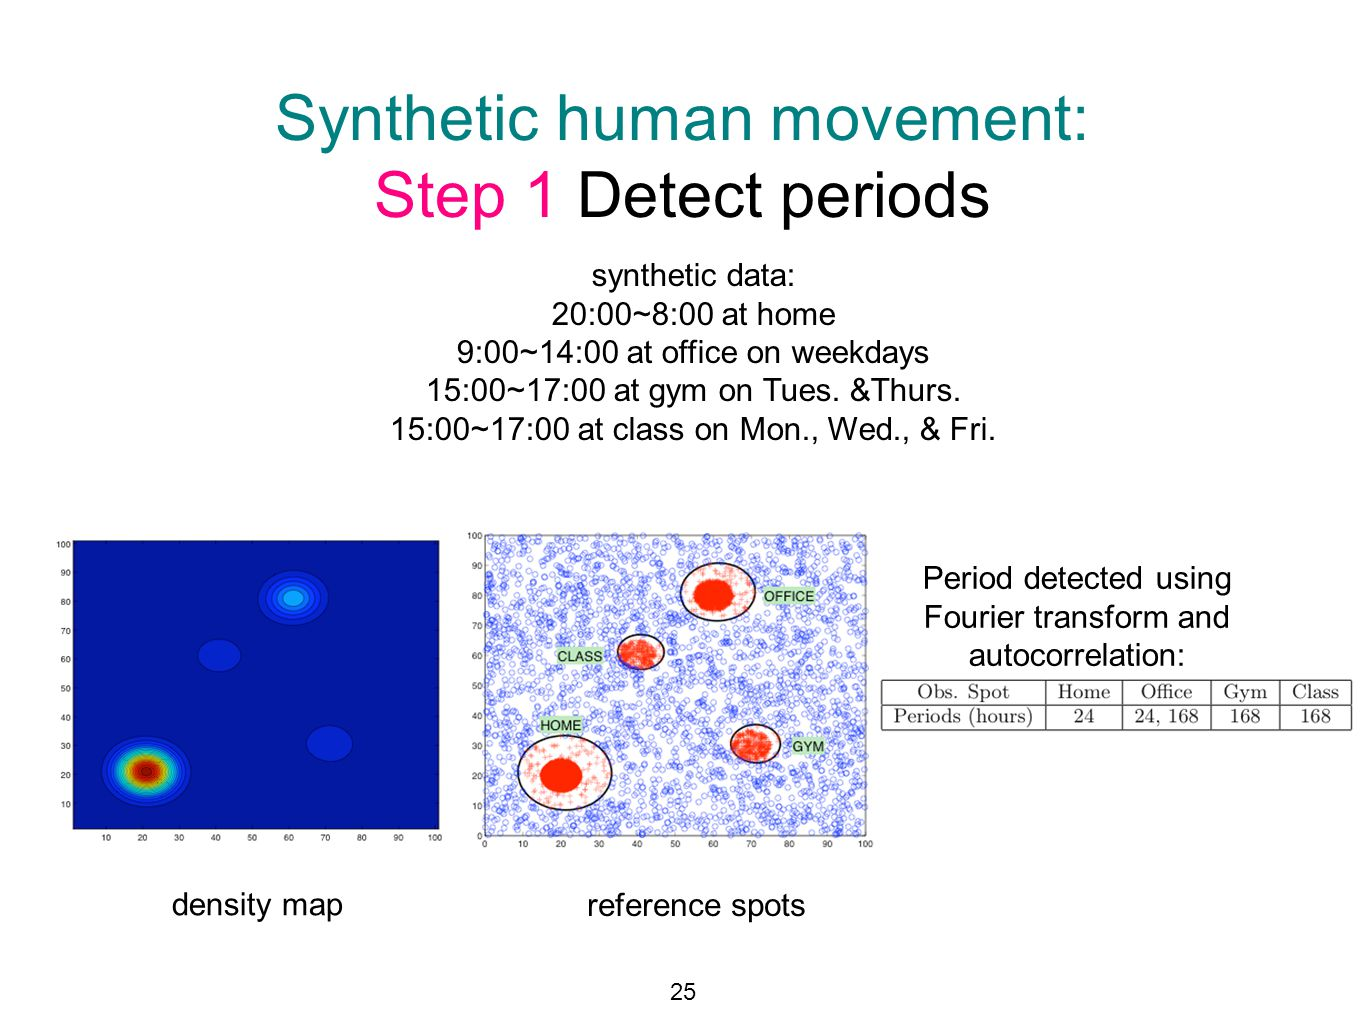 Synthetic human movement: Step 1 Detect periods